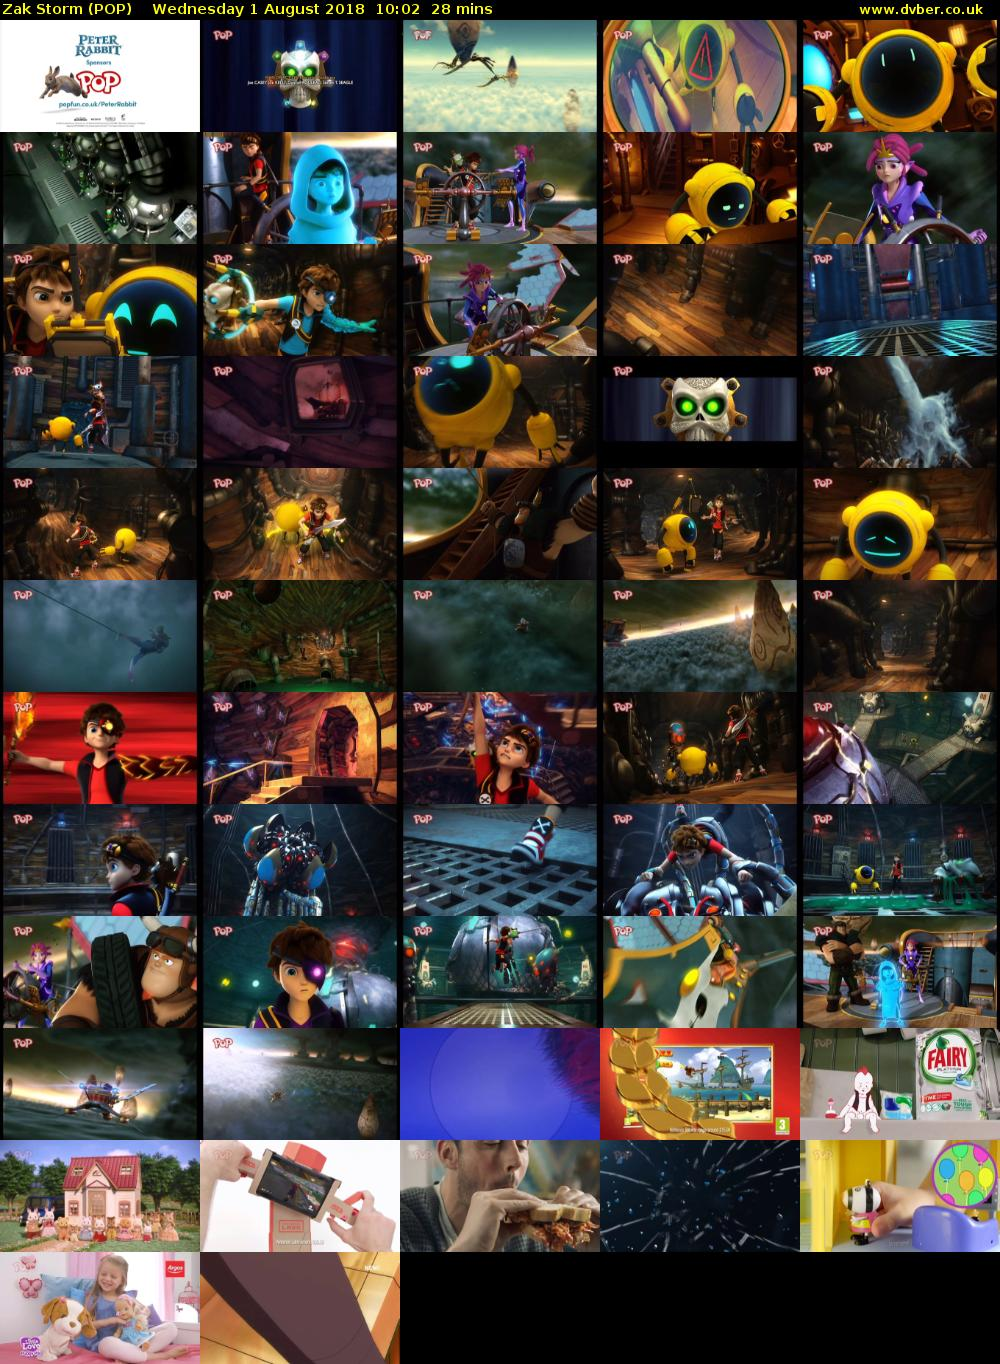 Zak Storm (POP) Wednesday 1 August 2018 10:02 - 10:30